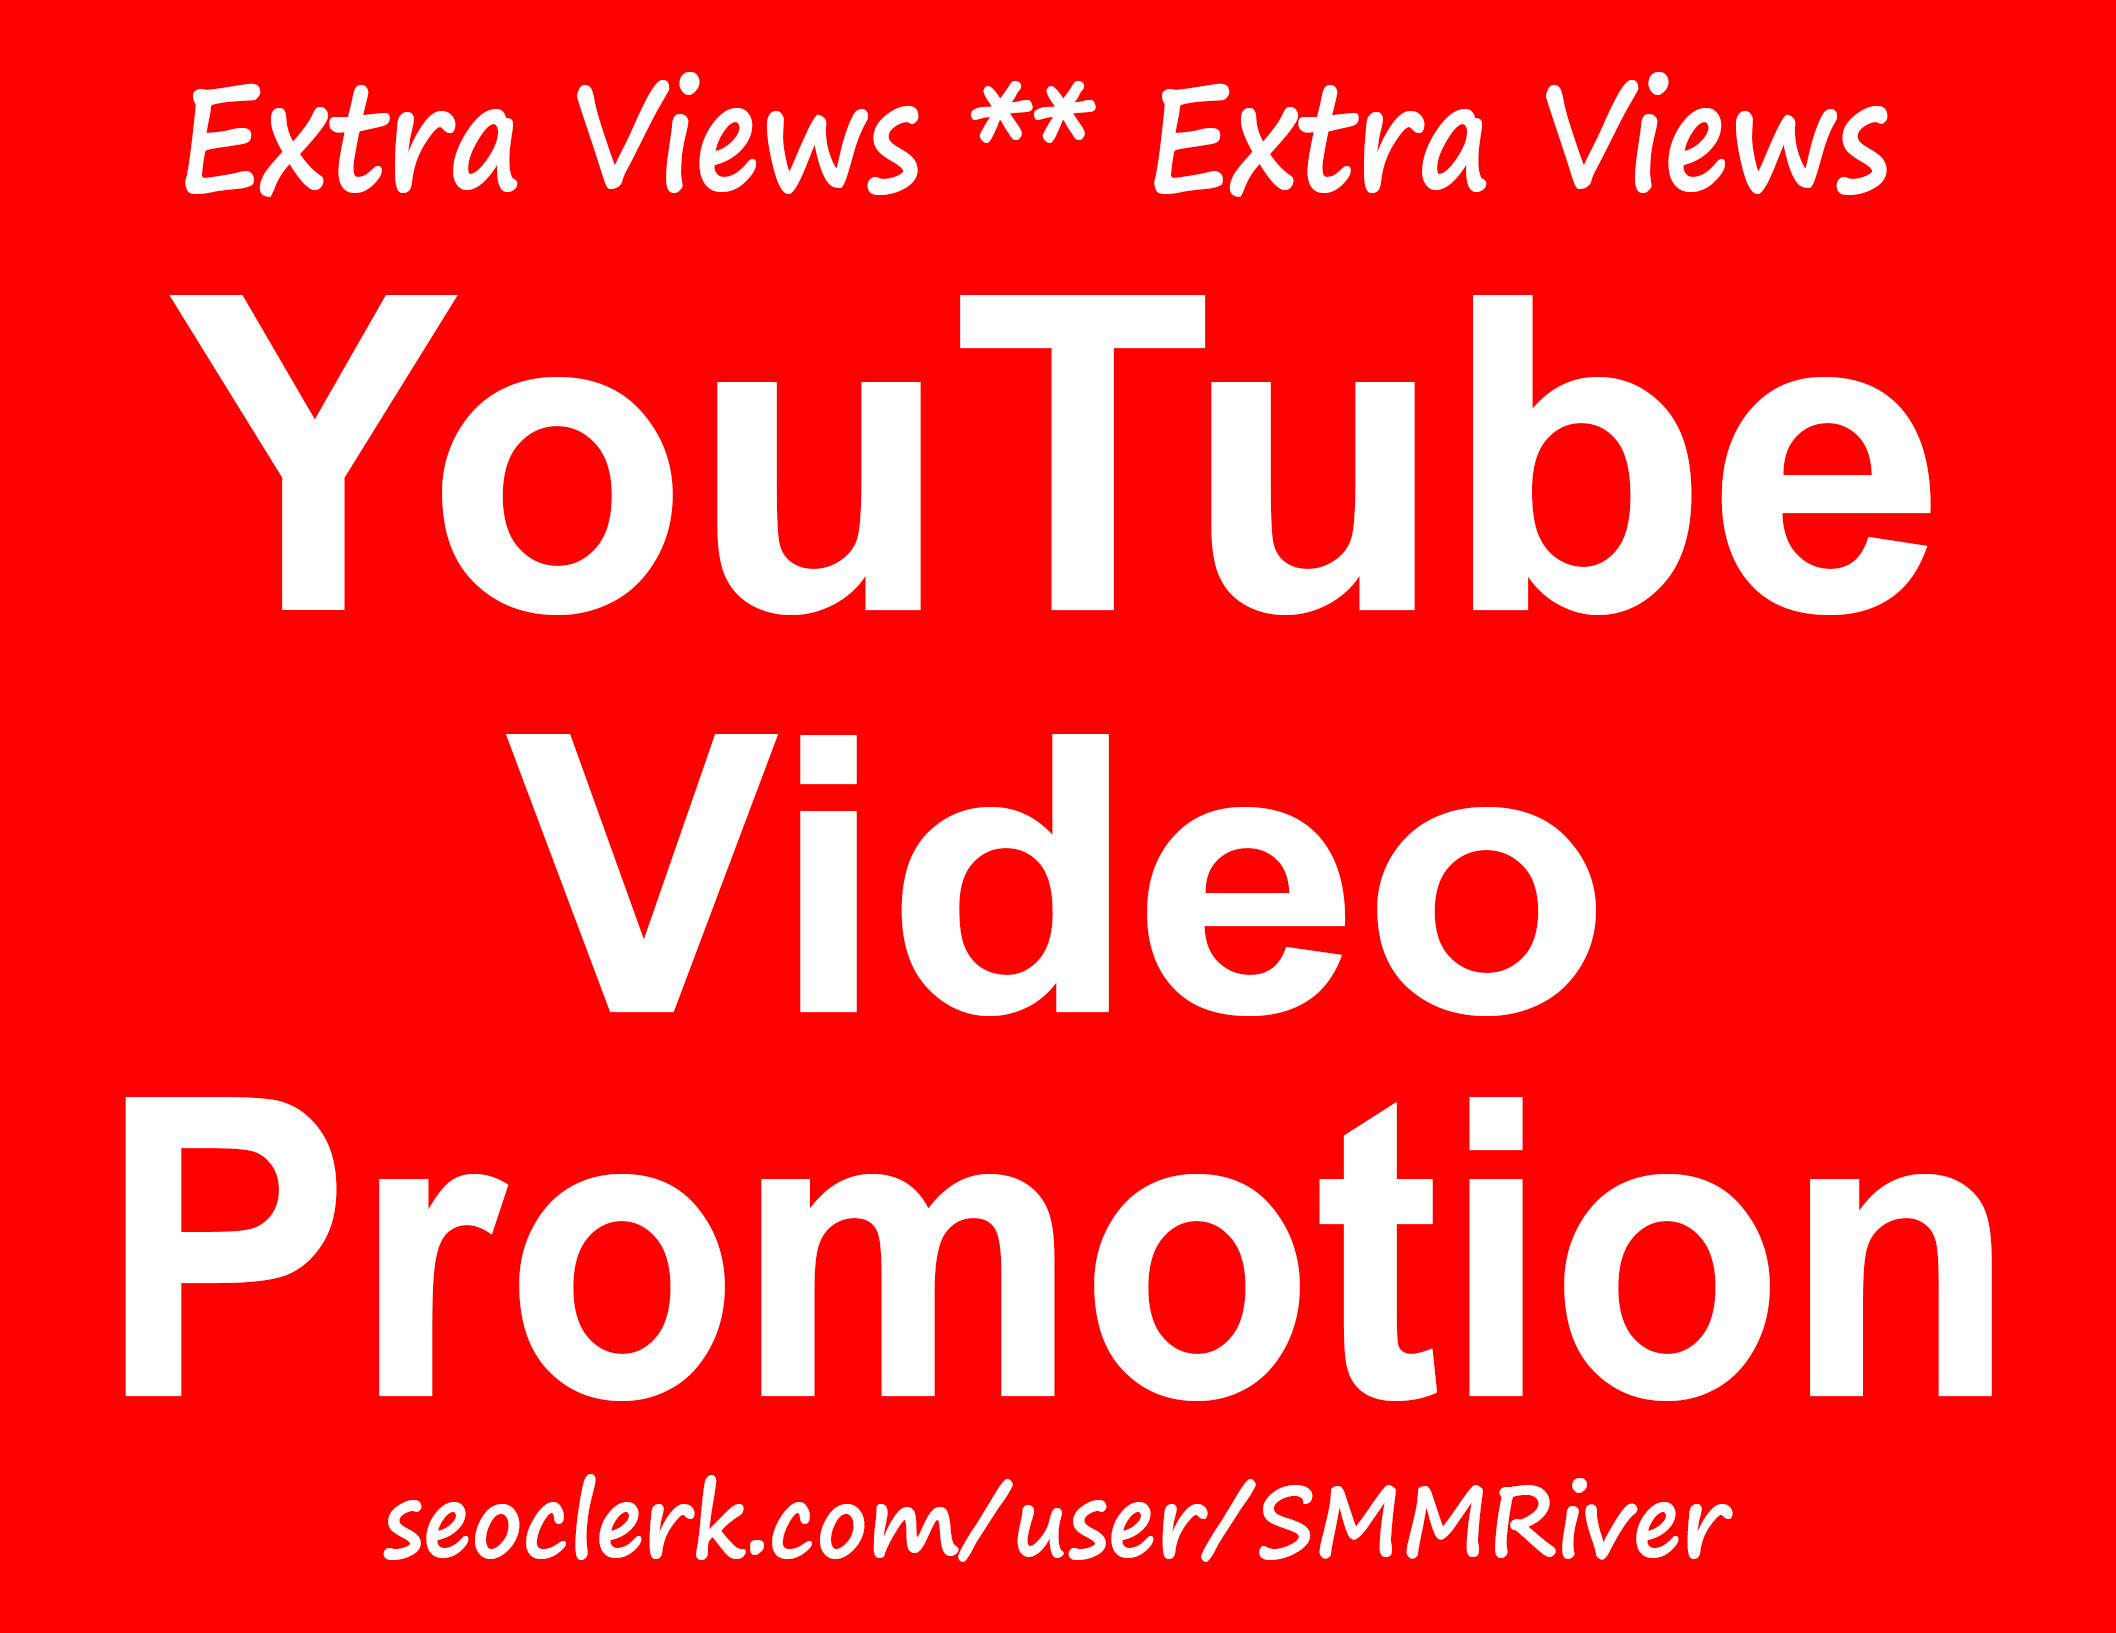 YouTube Video Promotion Real and Good For Ranking